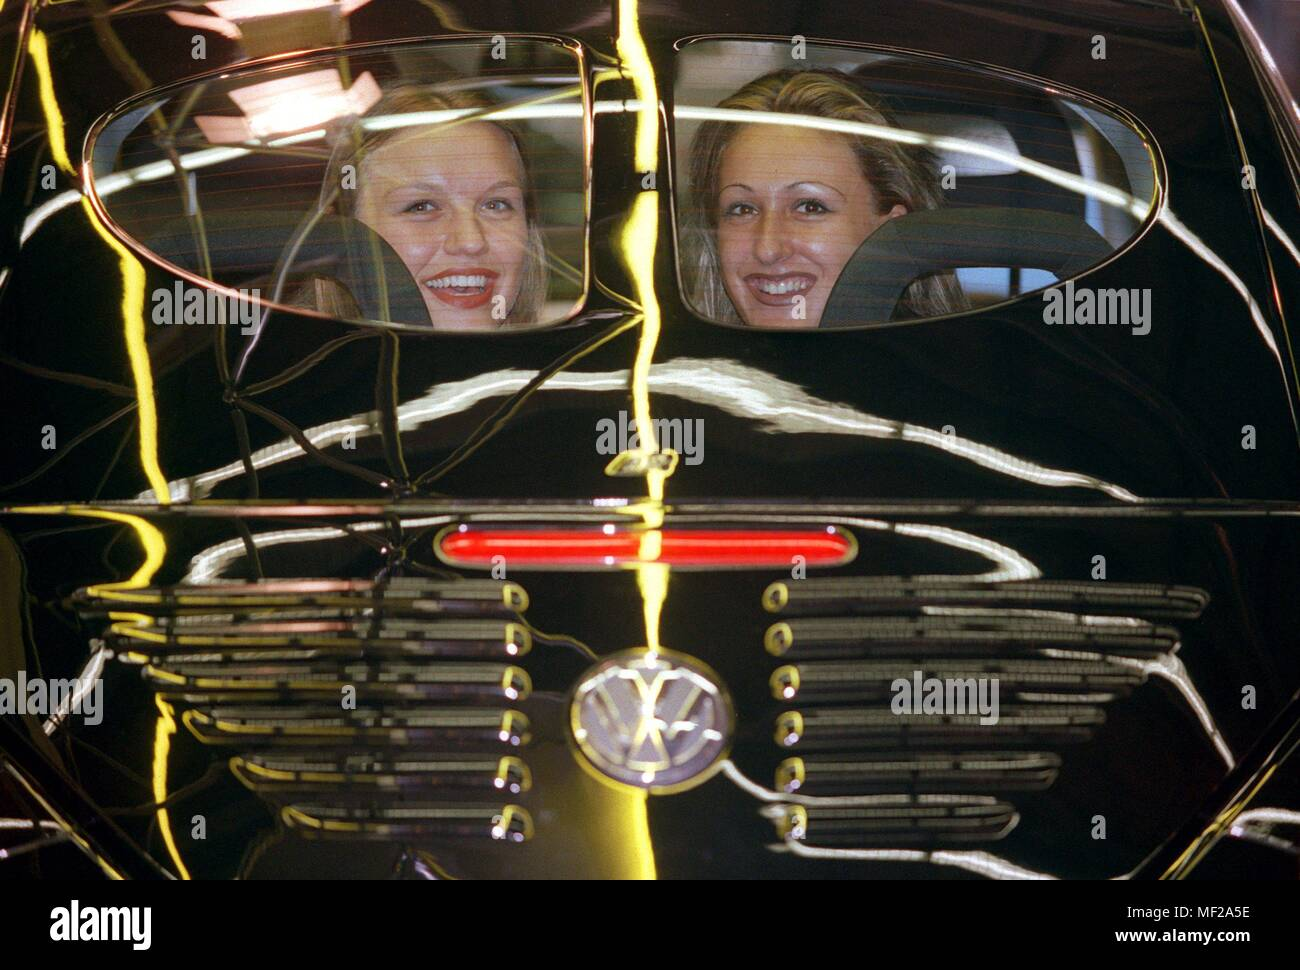 Tatjana (l) and Turkan (r) look at the International Motor Show (IAA) on 15.9.1999 through a so-called 'pretzel window' of a new VW Beetle. The VW Kafer of the first series also had the two-part rear window, which is now installed by the car accessories company Abt in the new Beetle. Just under a year after the introduction of the New Beetle in Germany, Volkswagen is responding to the weak sales figures with a cheaper model. Offered is now a New Beetle for the base price of 30450 DM (15570 Euro). That is about DM 5,000 less than the most favorable model of the Kafer successor to date. The engi - Stock Image